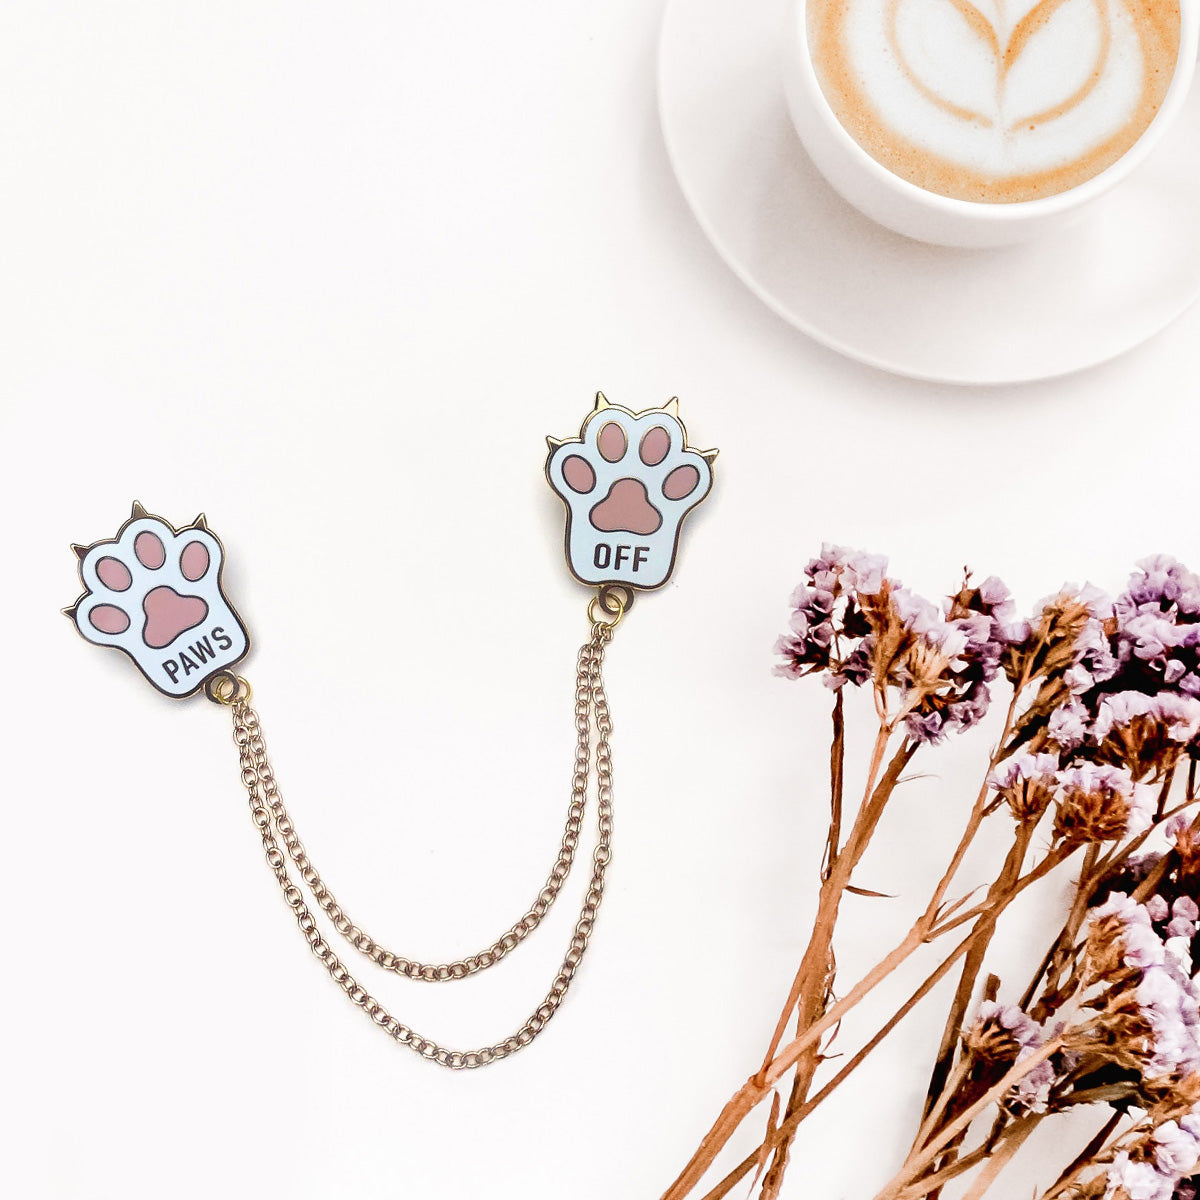 Paws Off- Collar Pins